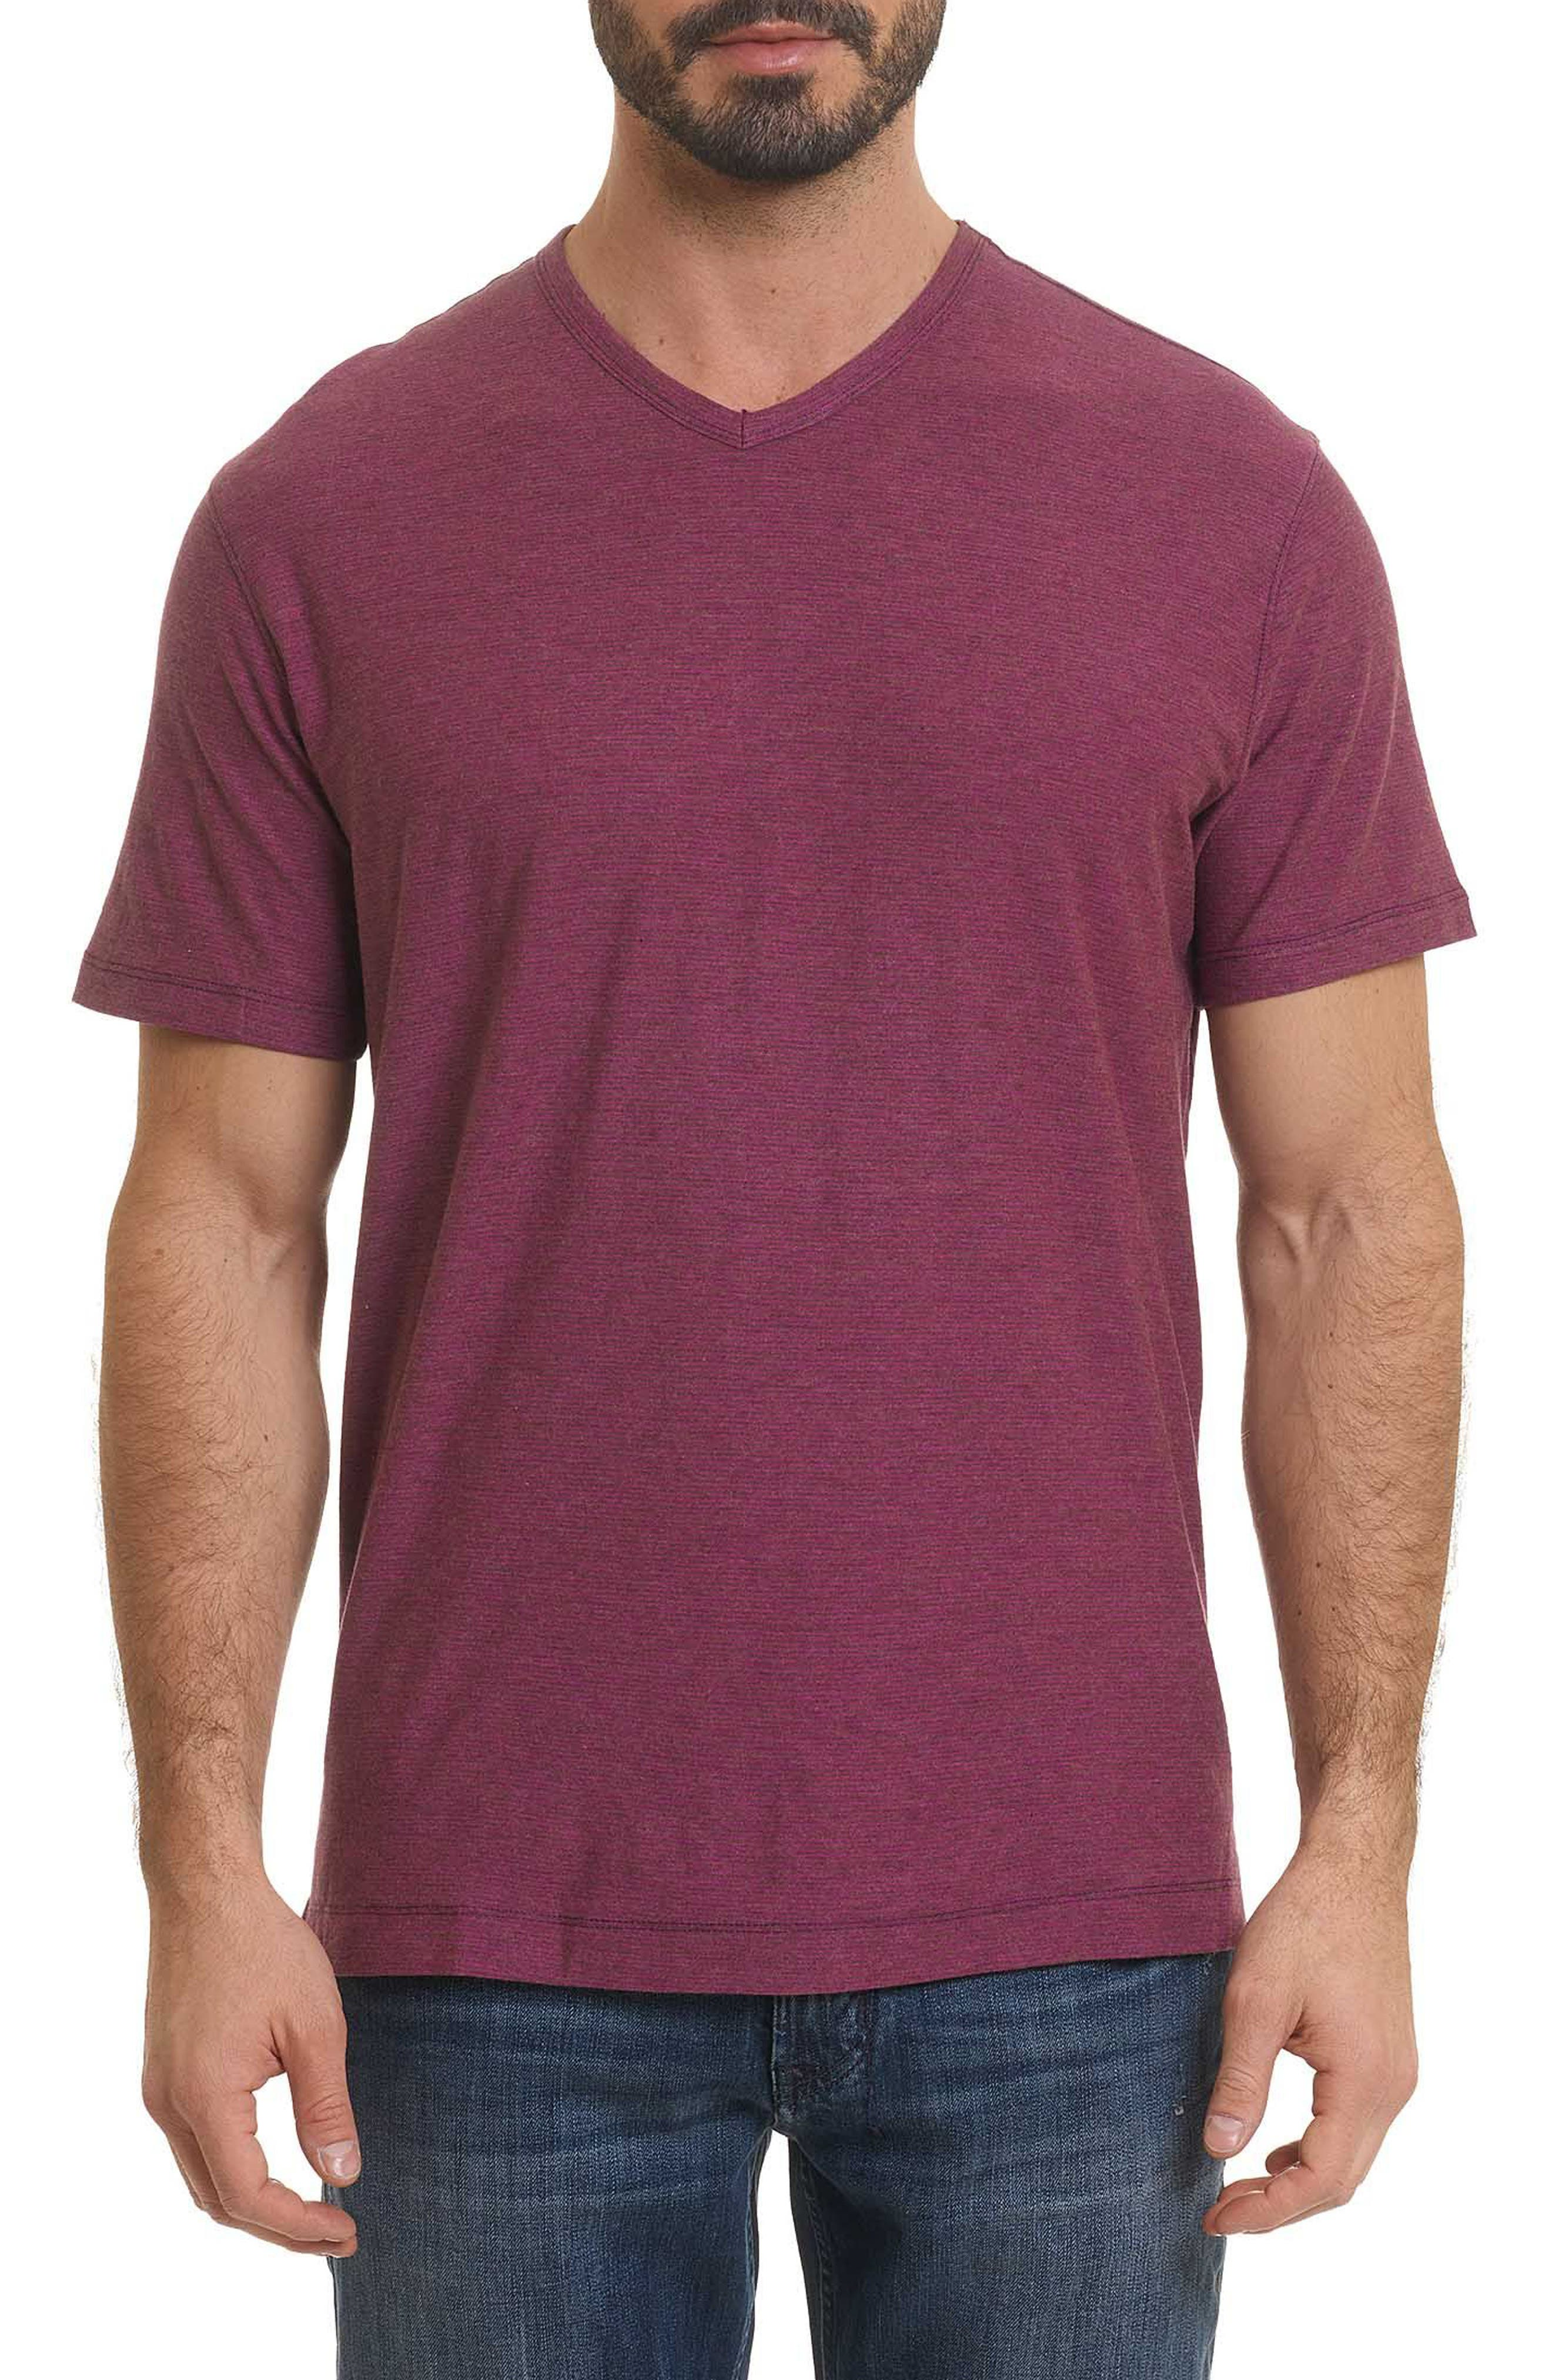 Orchidlands Stripe T-Shirt,                         Main,                         color, HEATHER AMETHYST